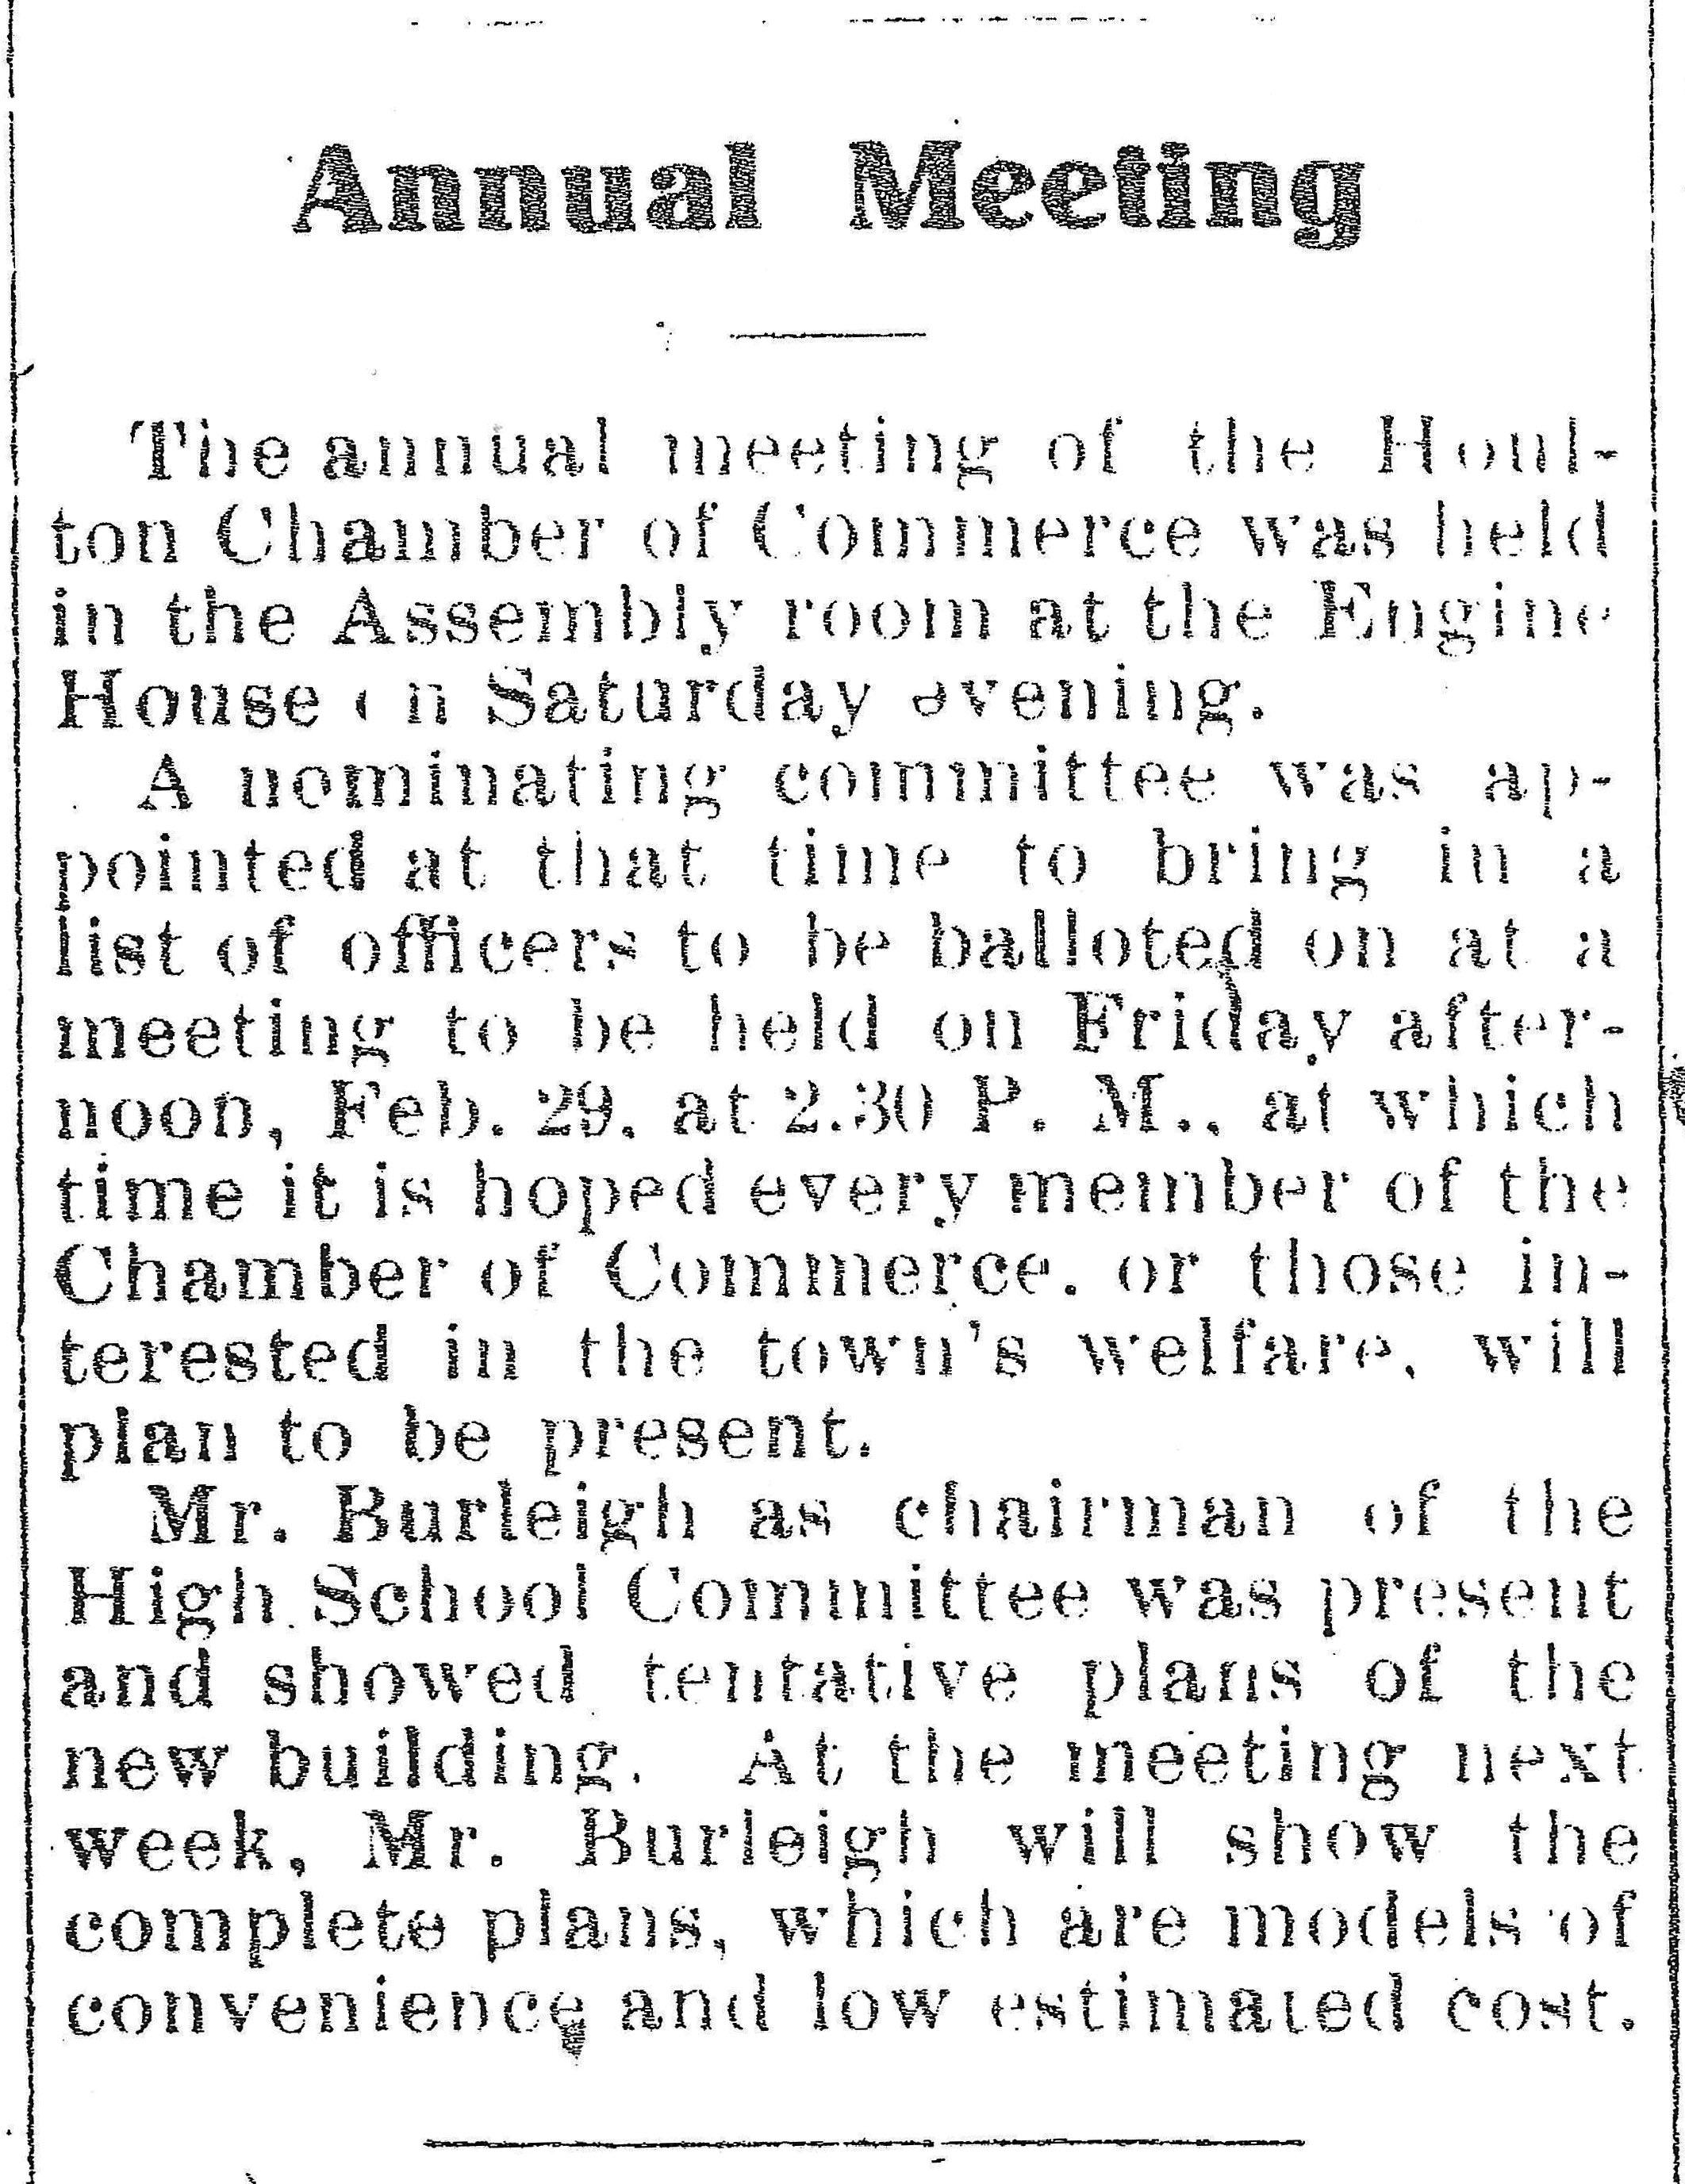 Houlton Chamber Meeting 1914